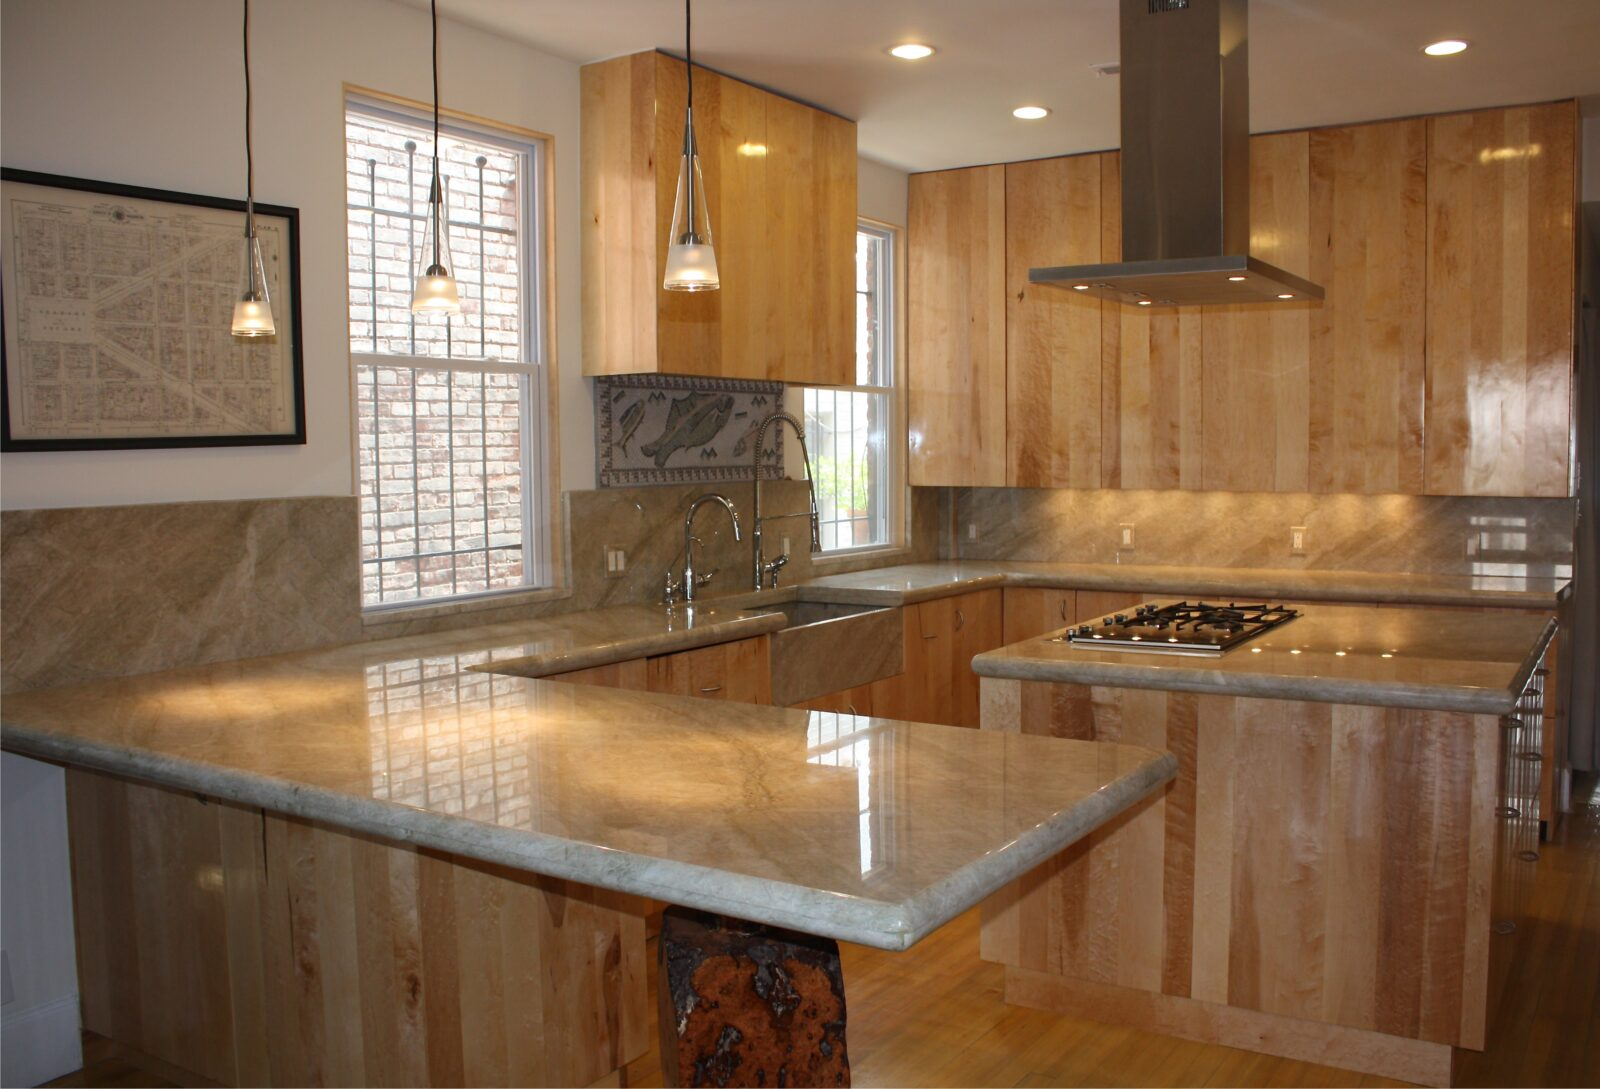 cabinet refinishing refacing kitchen countertop material Countertops Best Kitchen